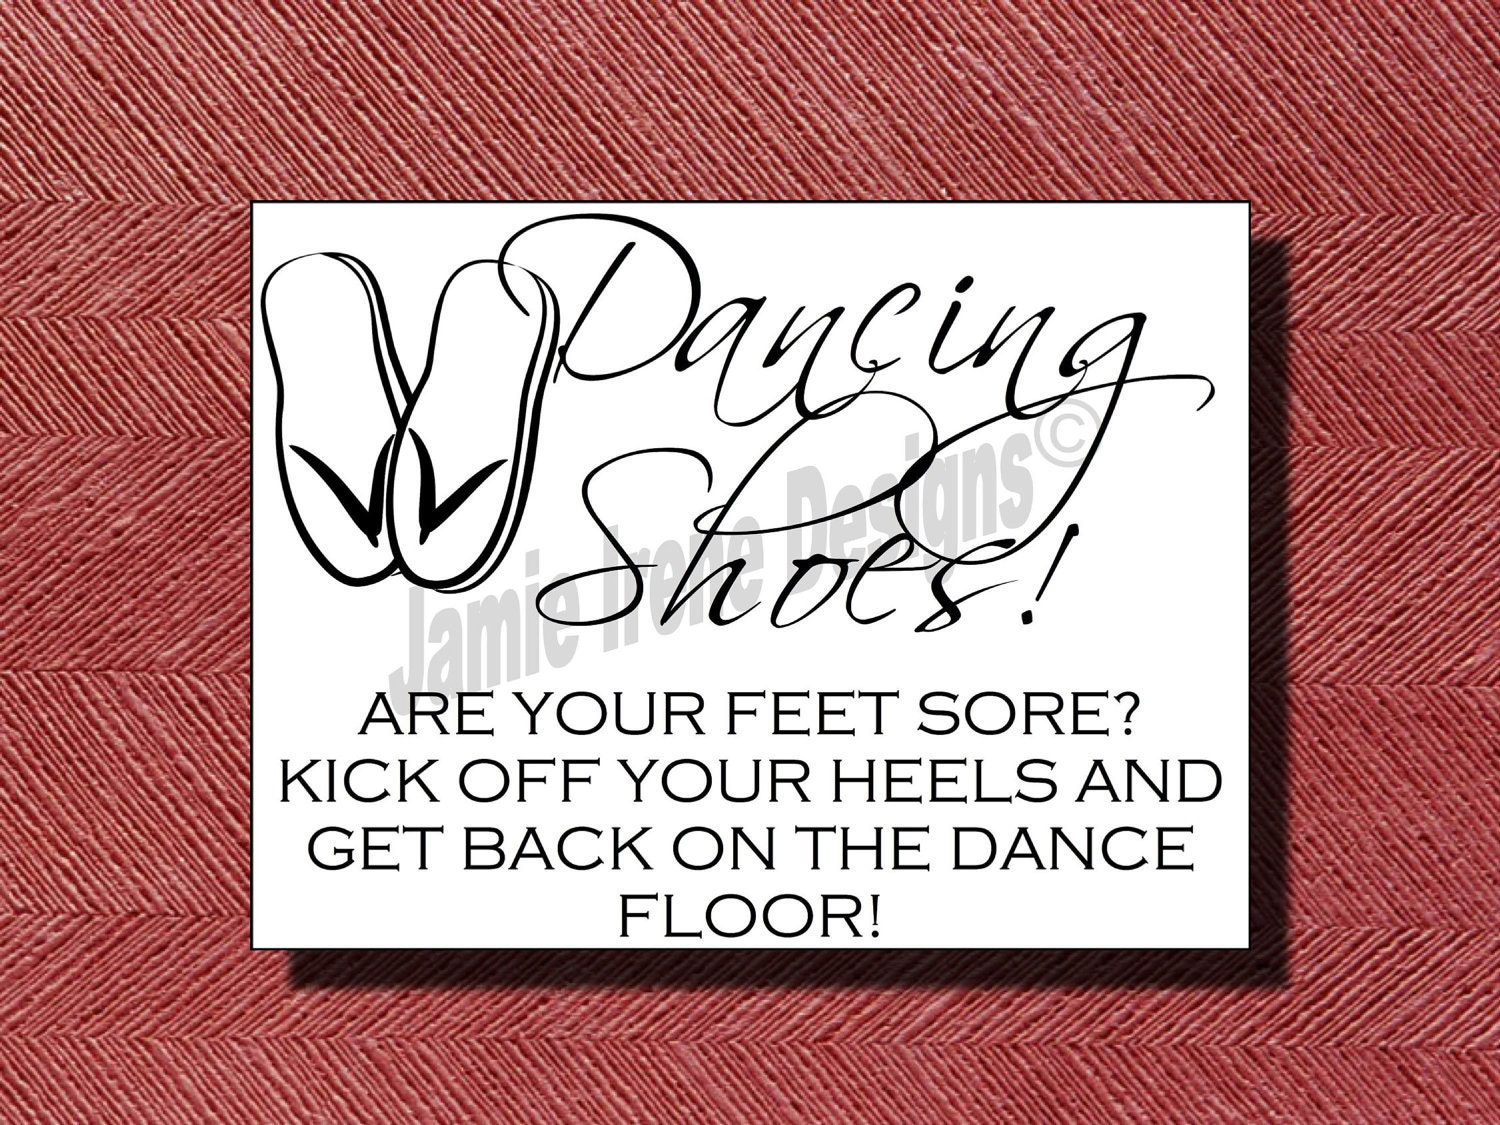 Wedding Dancing Shoes Sign Template